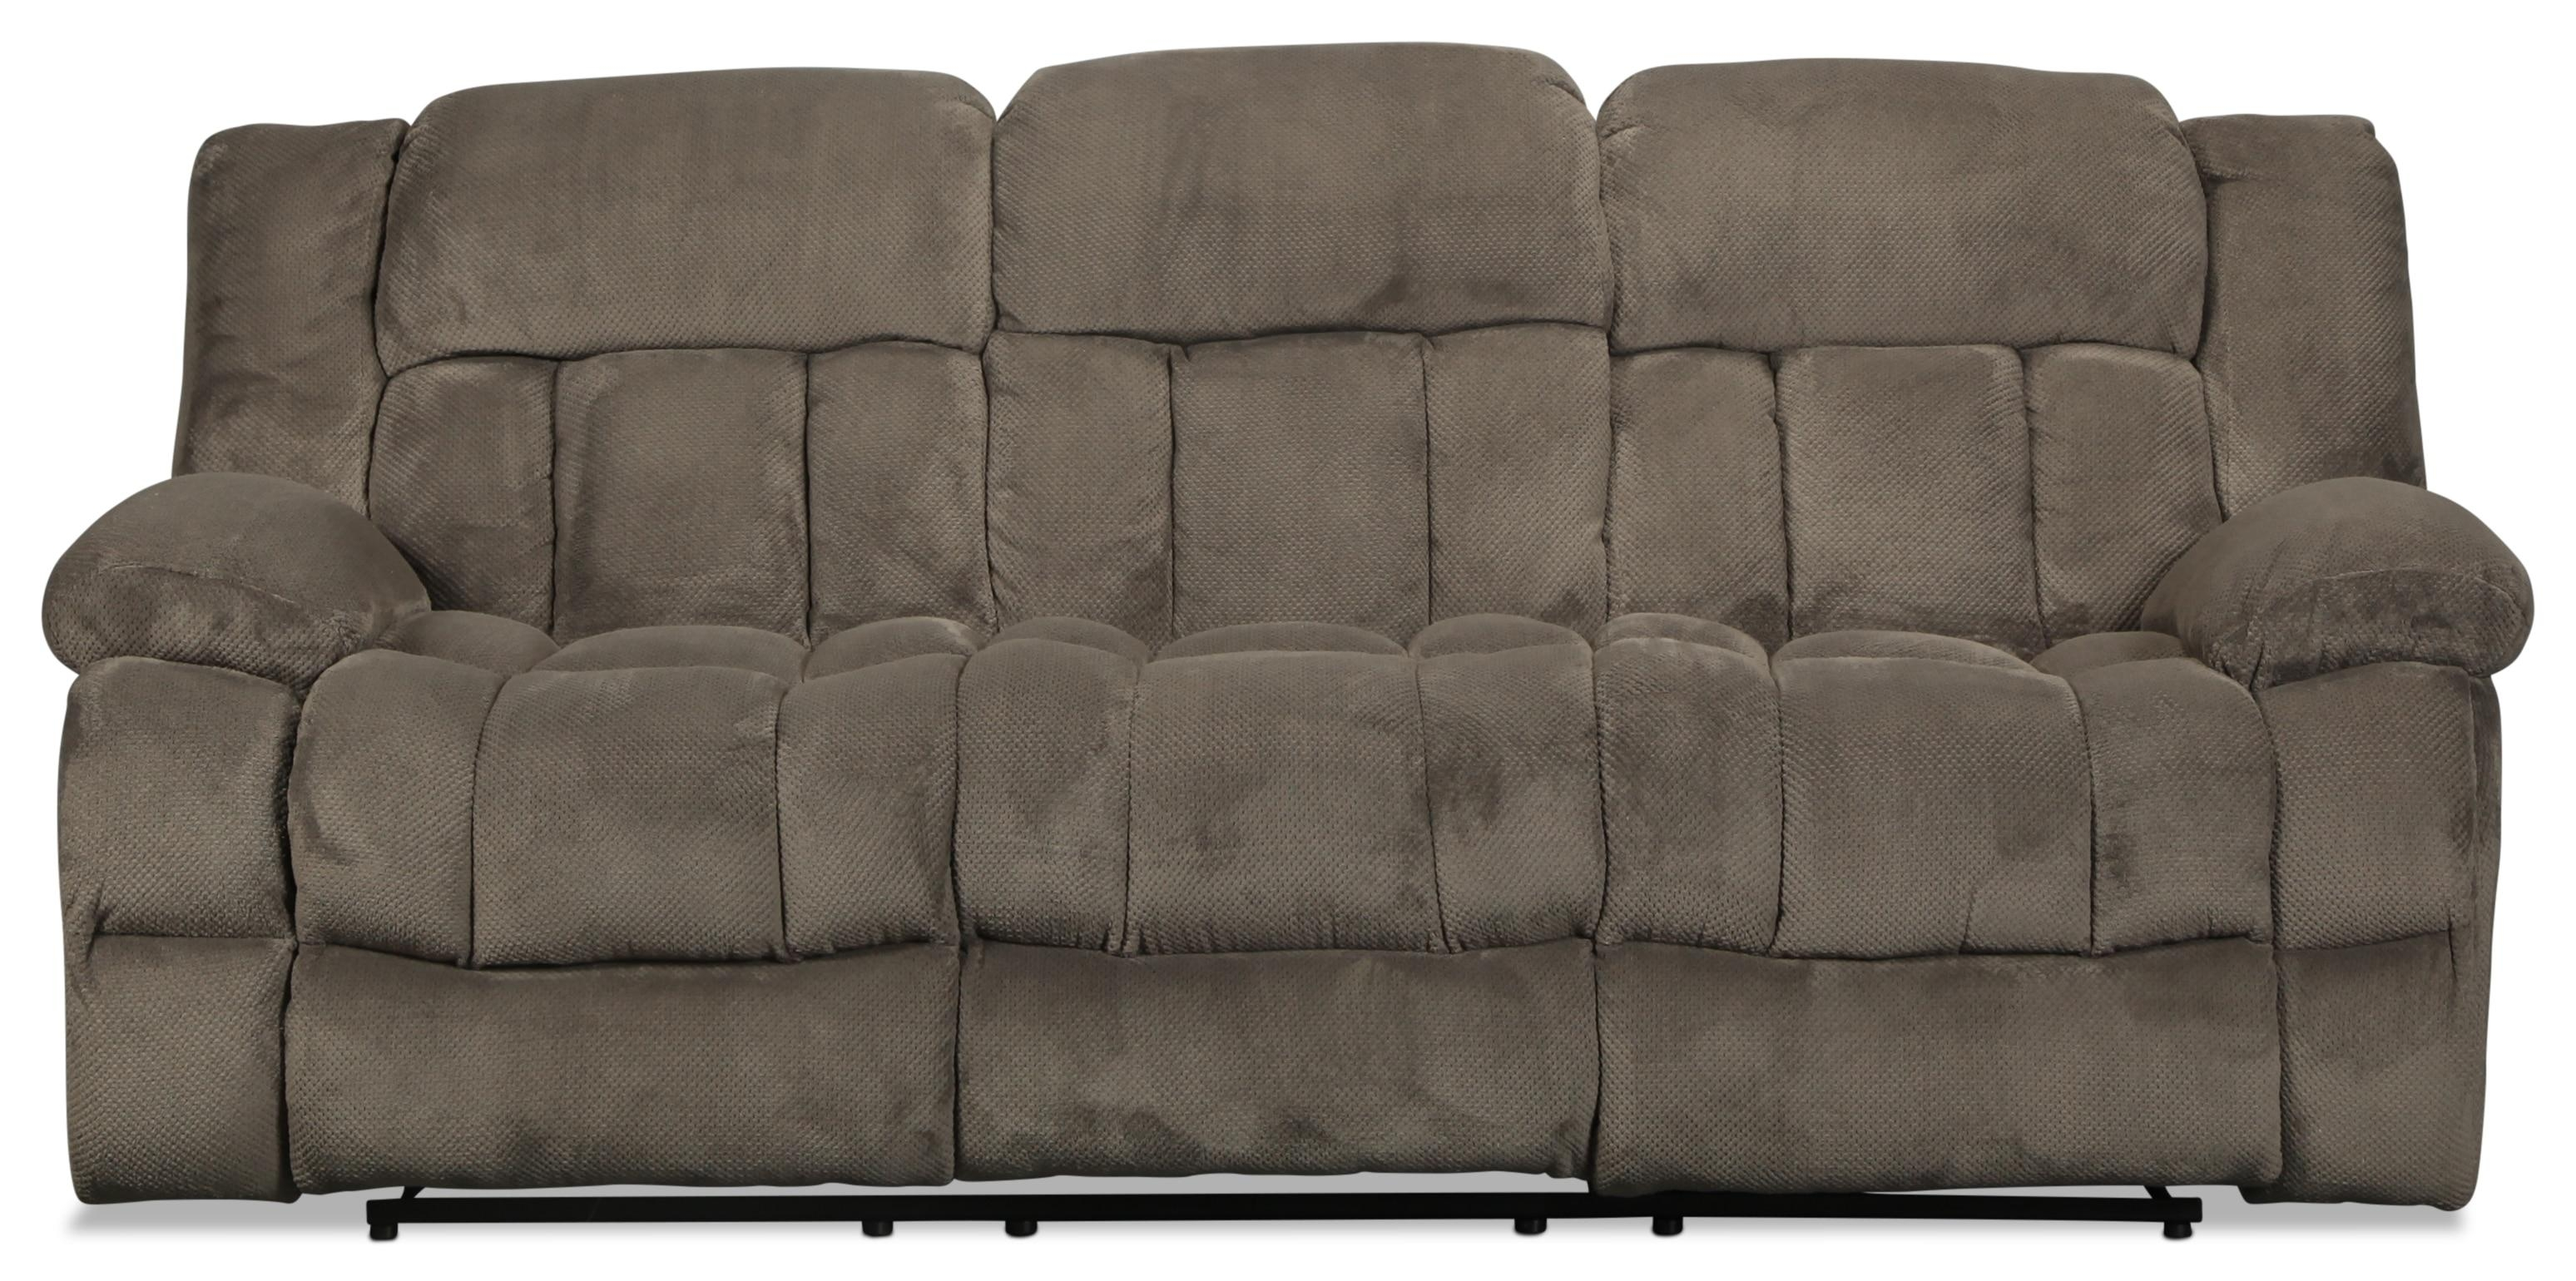 Sofas | Levin Furniture For Wide Sofa Chairs (Image 16 of 20)